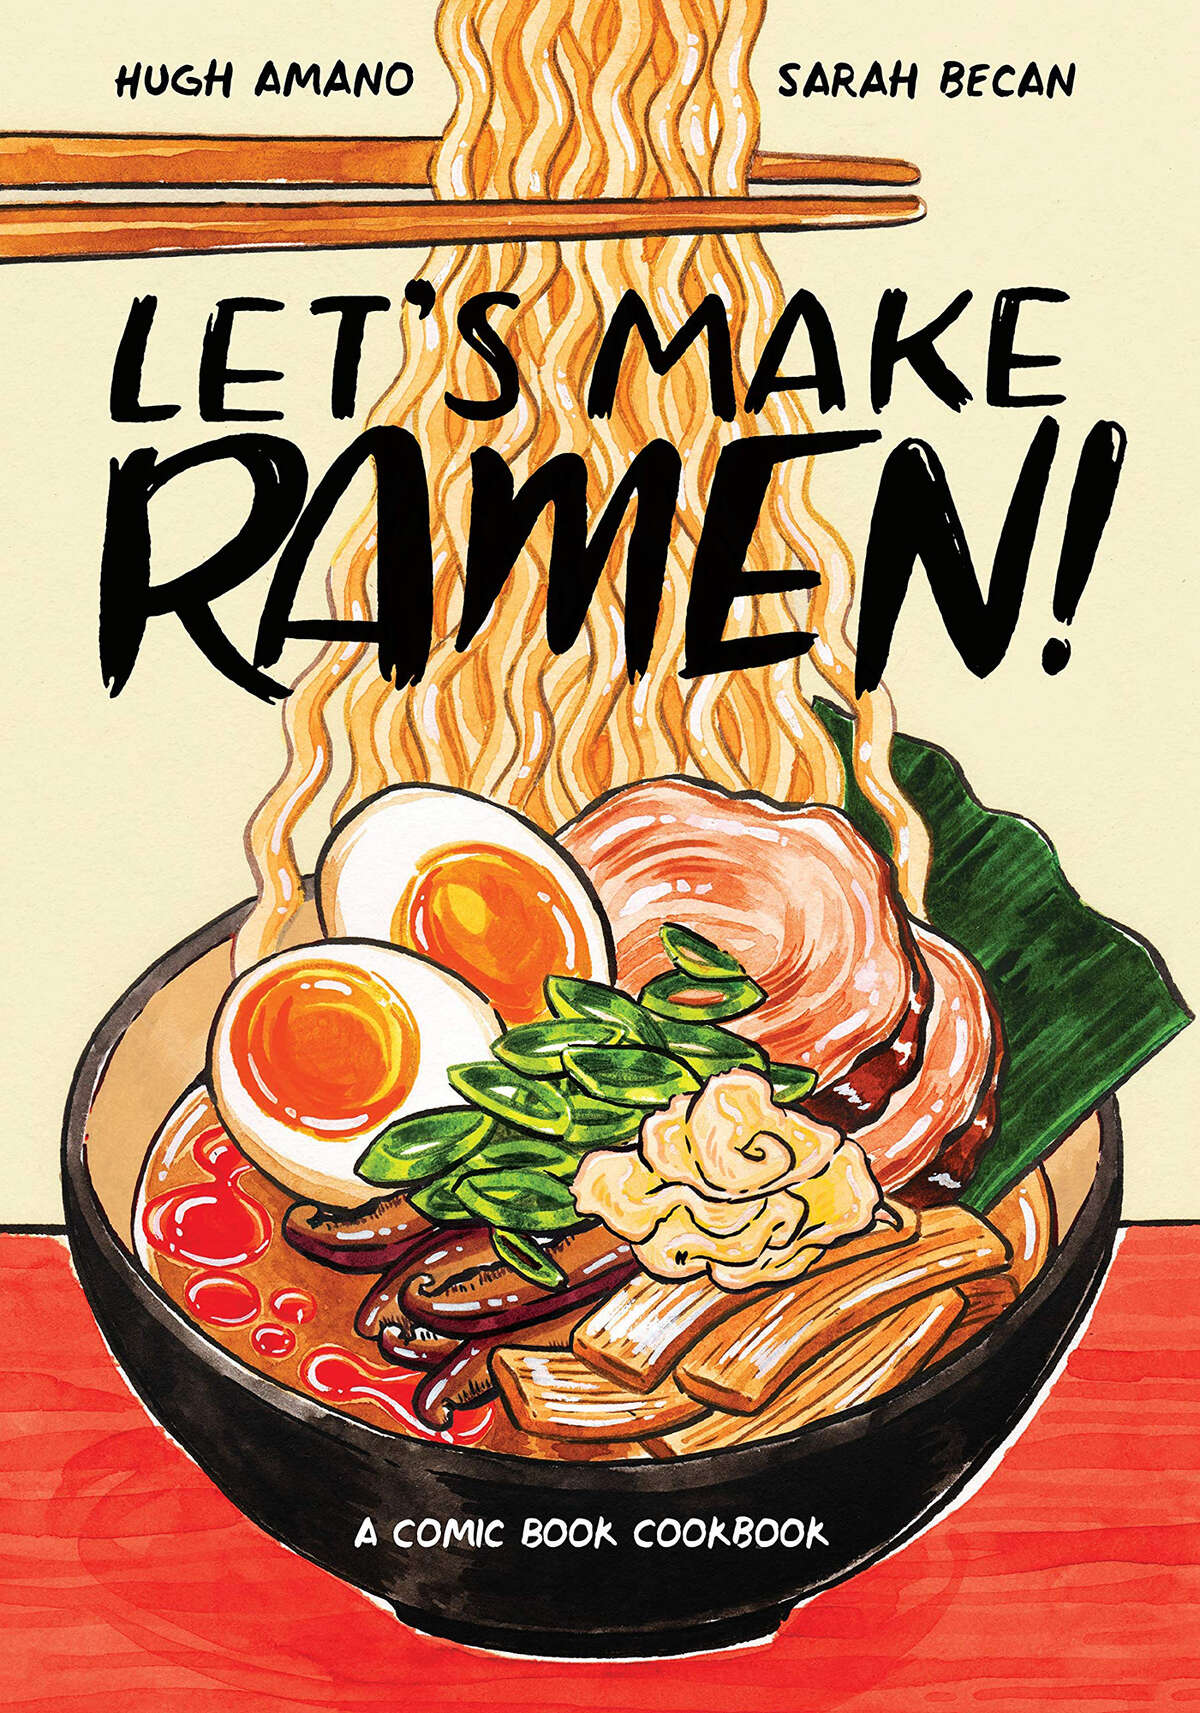 You'll find lots of recipes in this comic book cookbook by Hugh Amano and illustrator Sarah Becan, but the format really comes in handy when explaining the vast and often confusing world of ramen. Even if you never make your own ramen, you'll better understand what goes into a great bowl. -- Nick Kindelsperger (Courtesy Amazon/TNS)